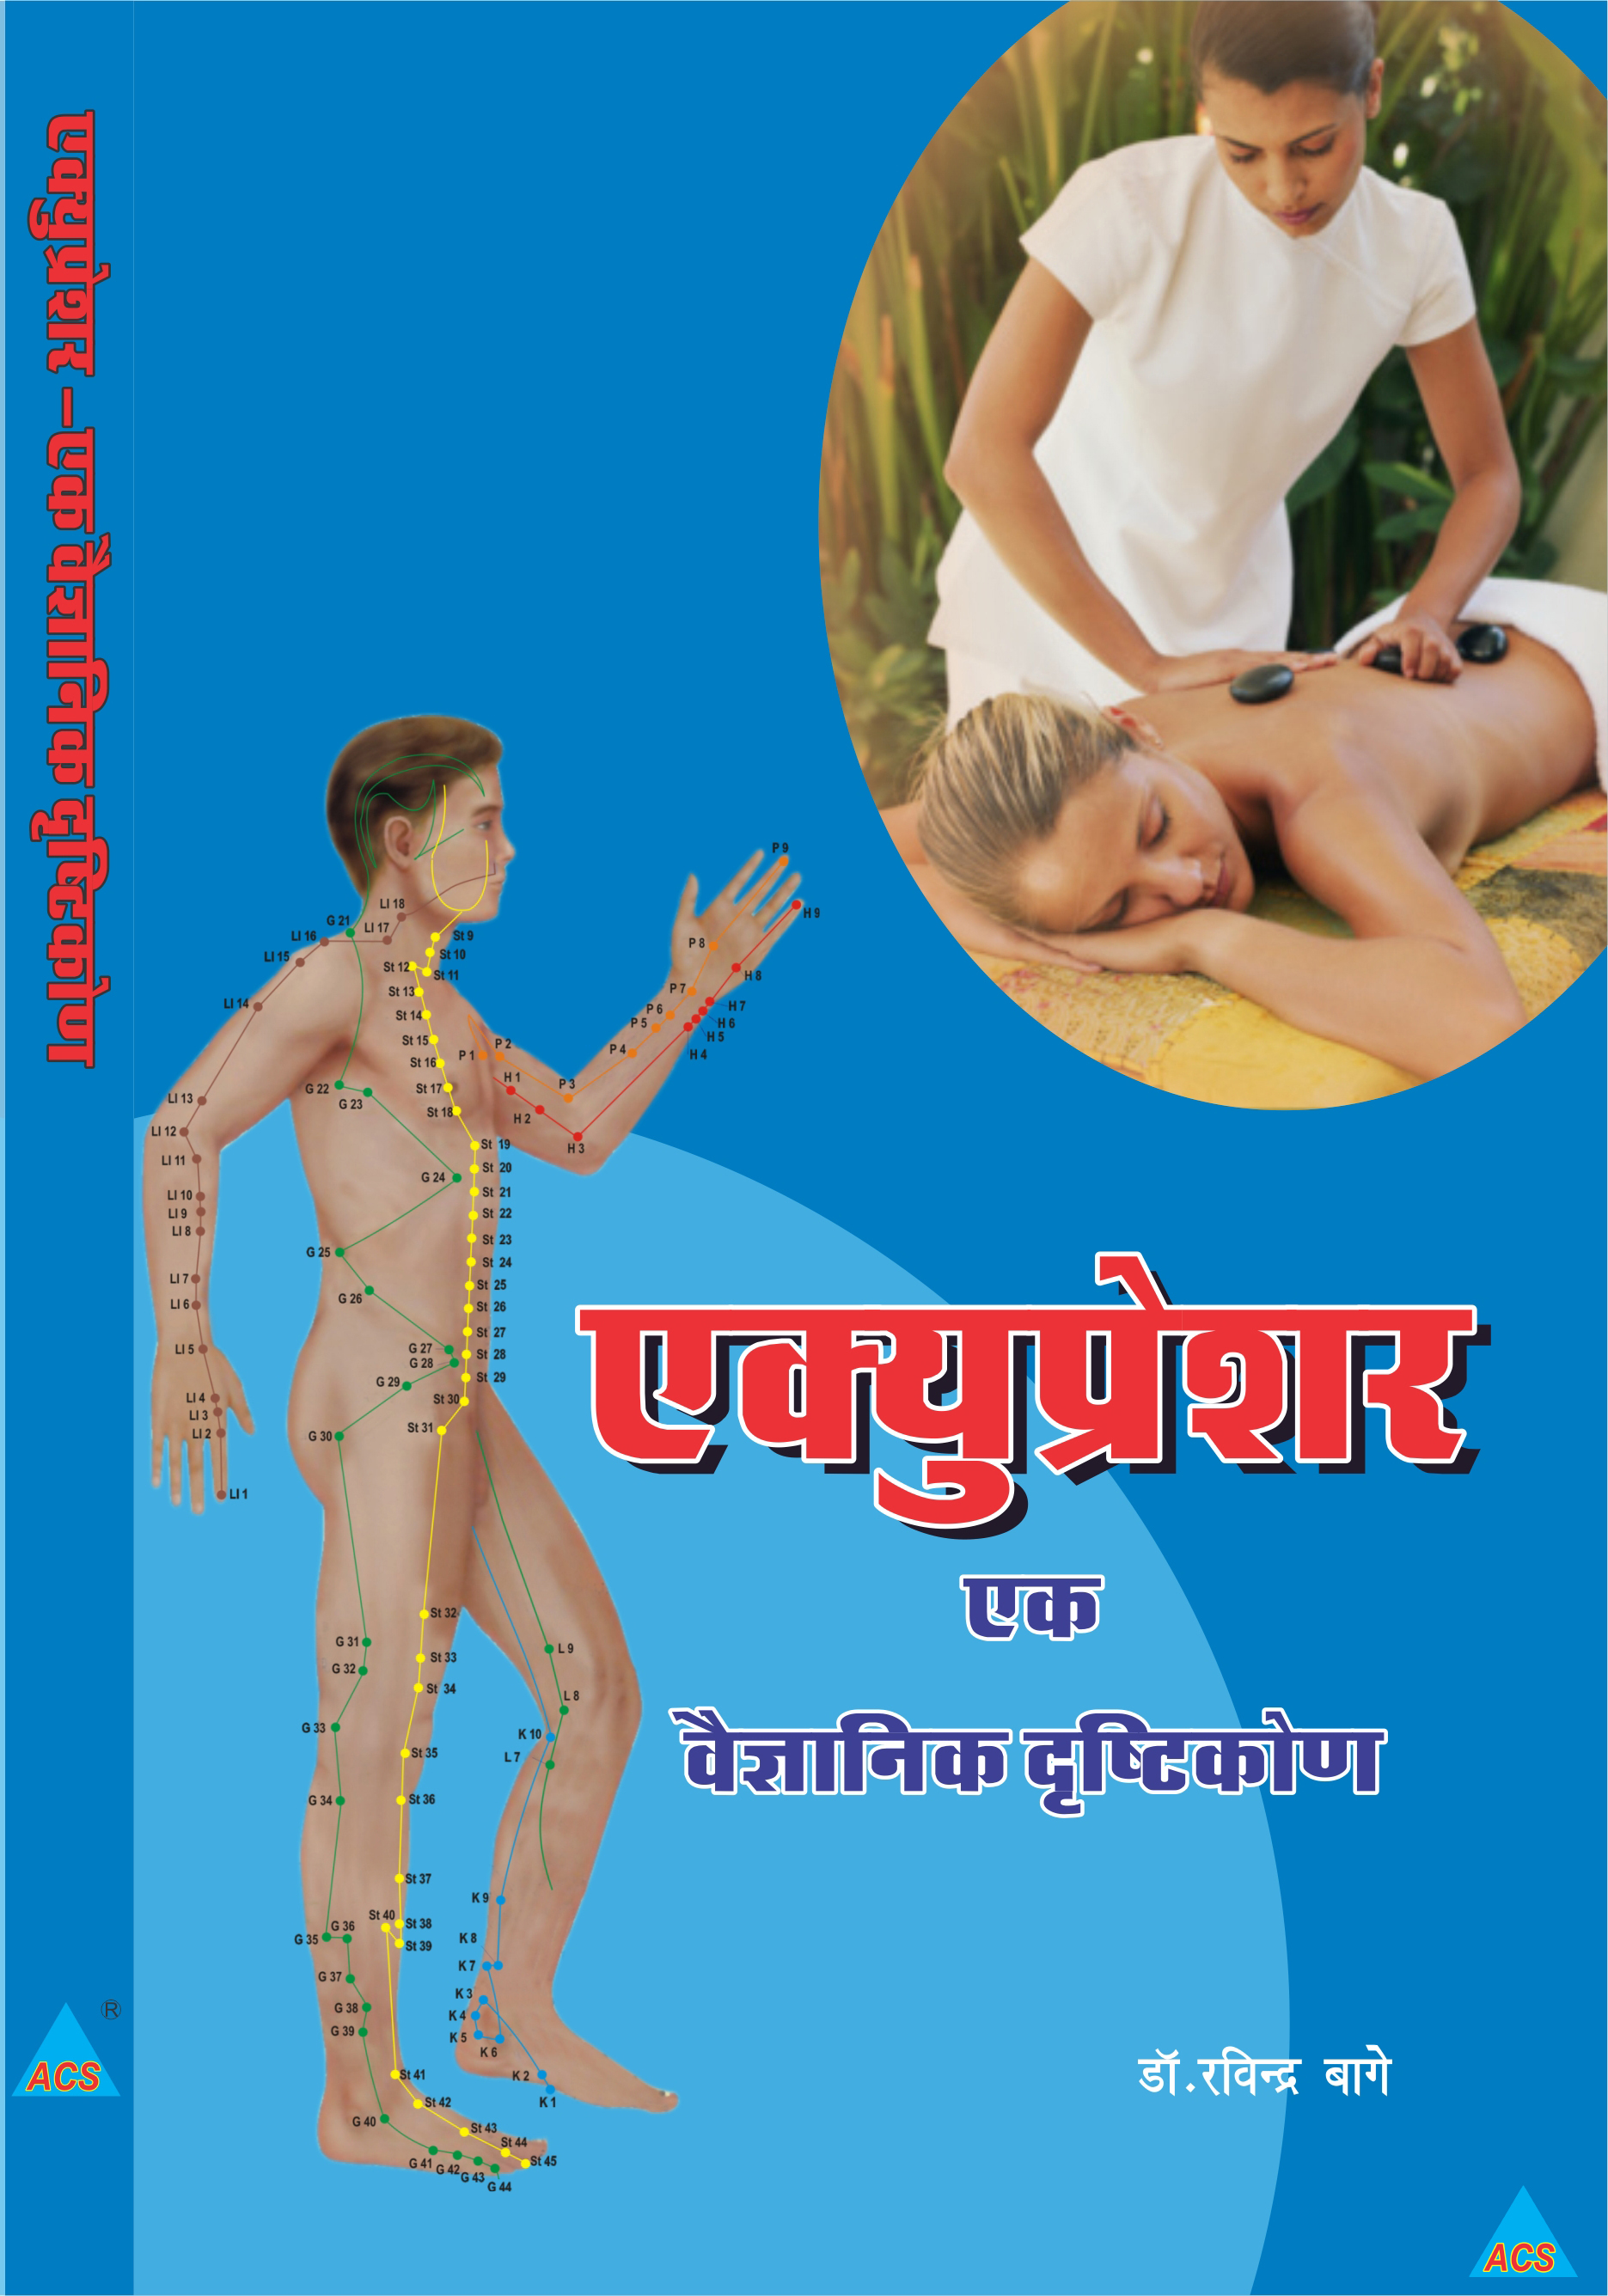 Acupressure - Smt. Lata Shree & Bage - Hindi  - 326